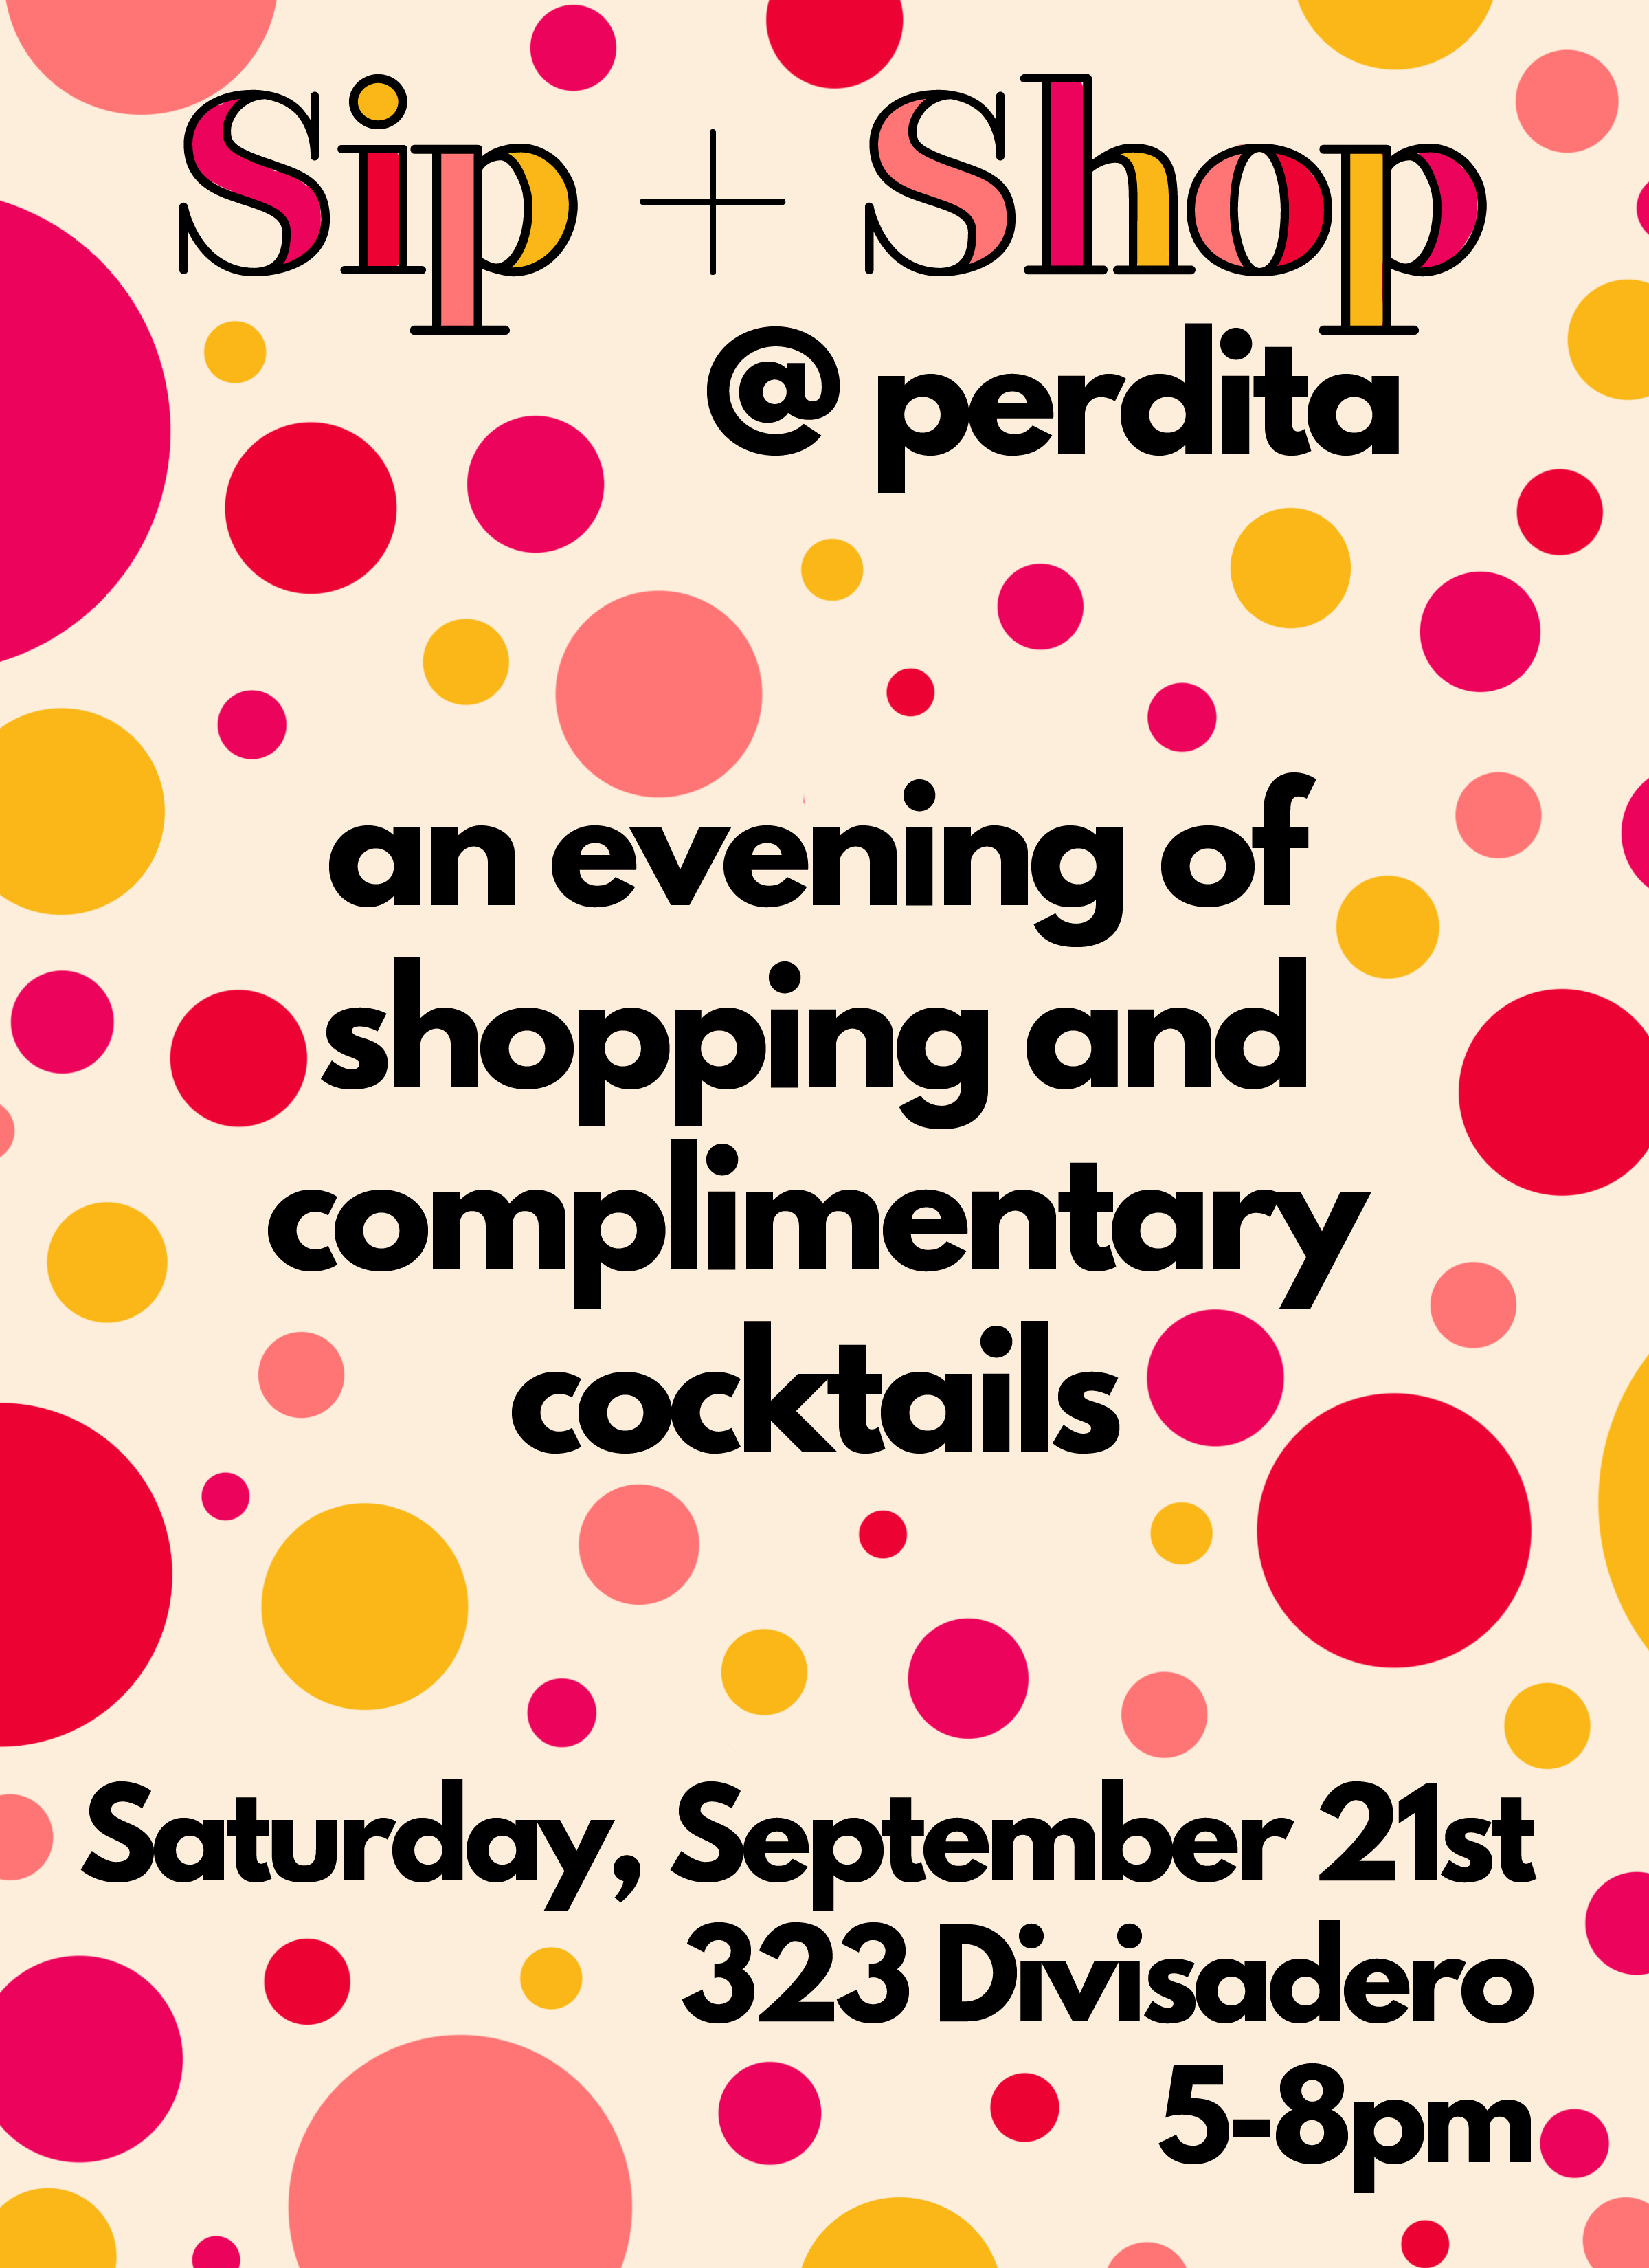 sip and shop perdita 2019.jpg